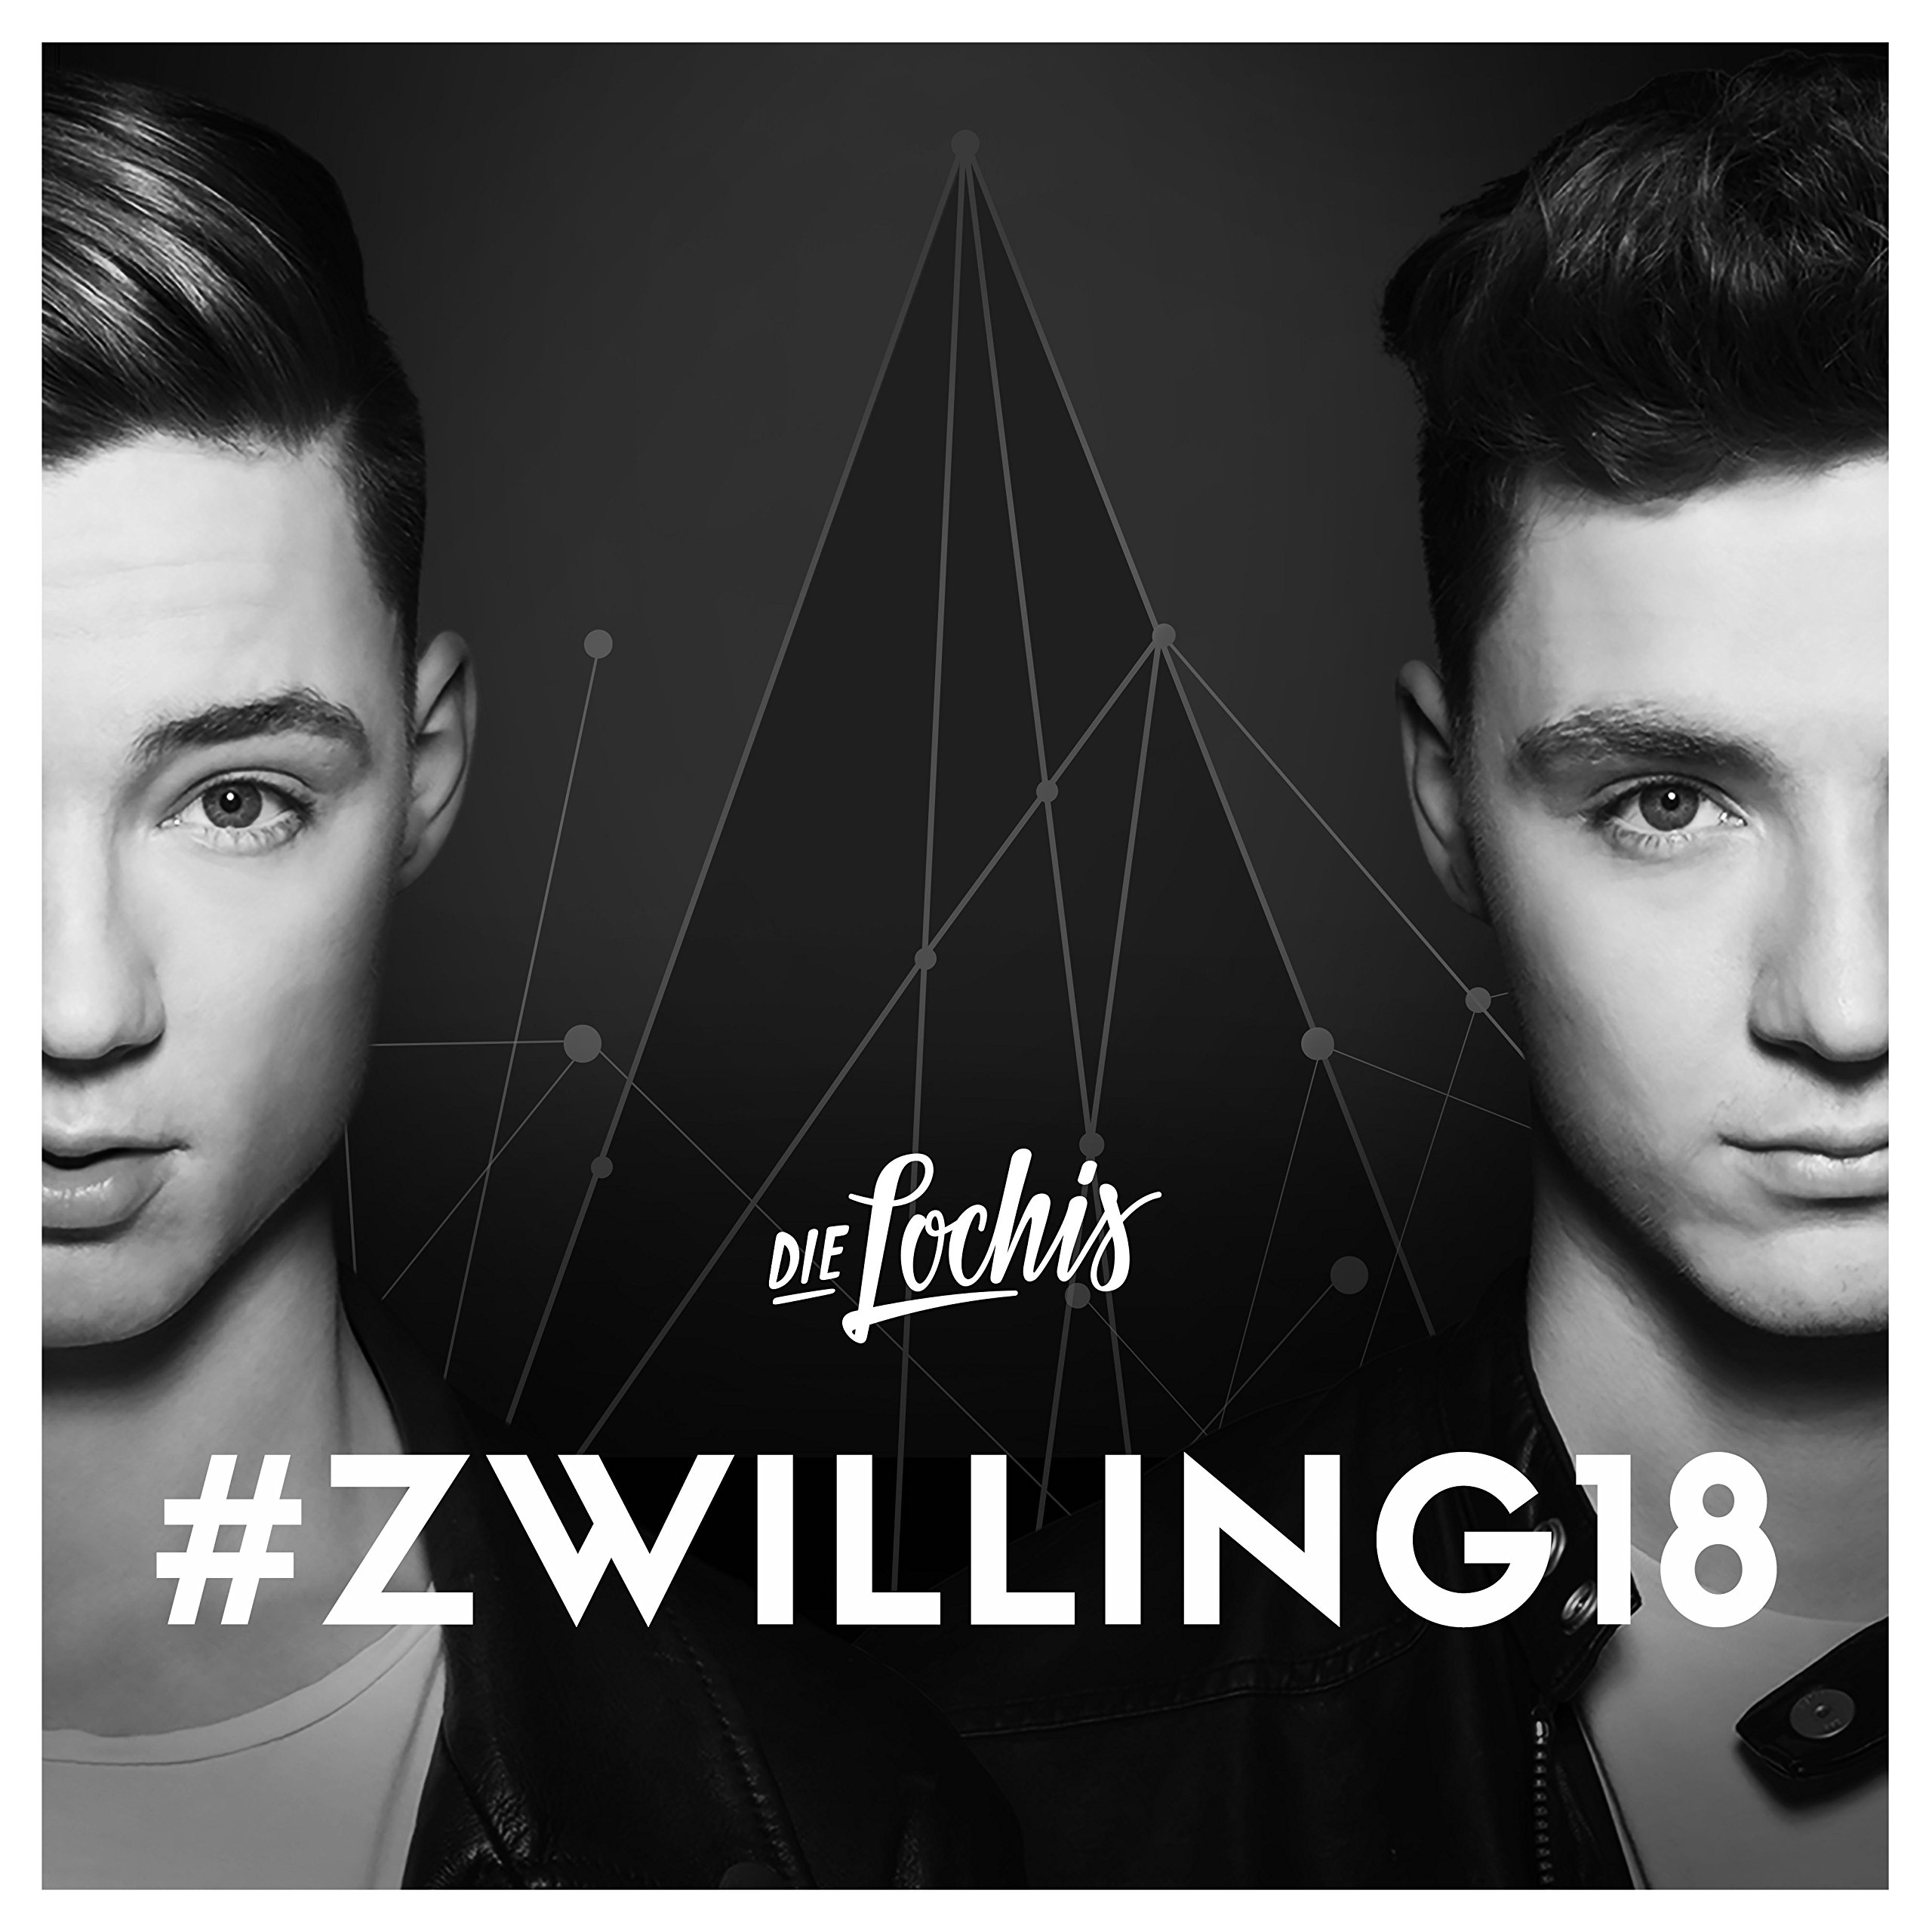 '#zwilling18